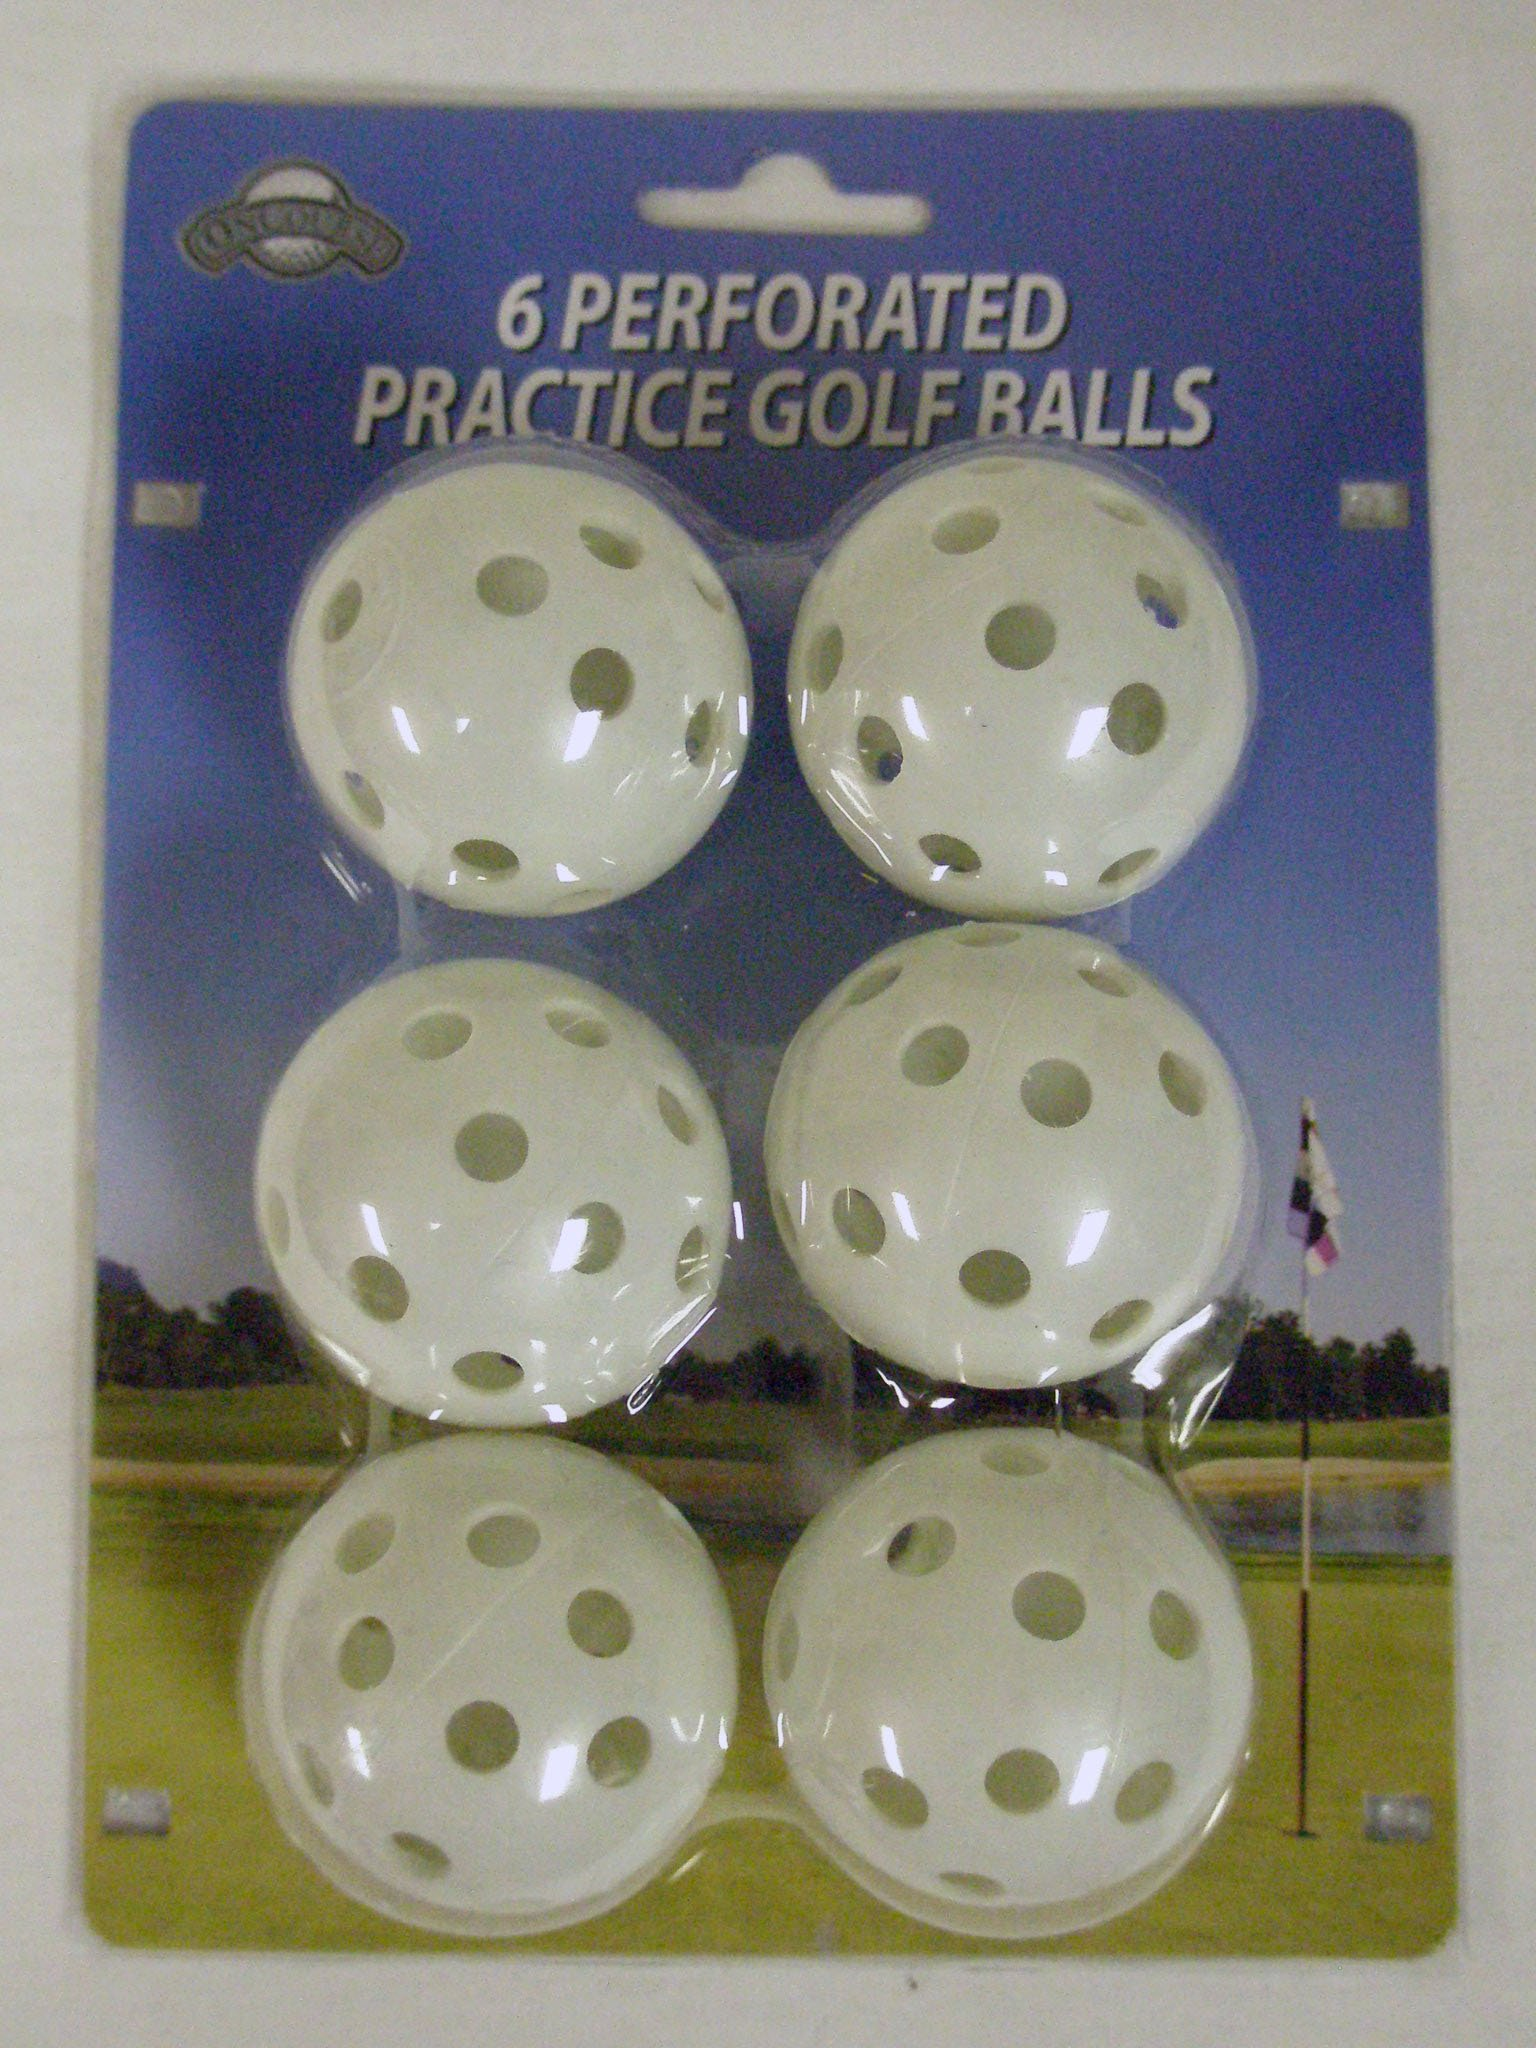 On Course Perforated Practice Golf Balls (6pk) Plastic Ball New